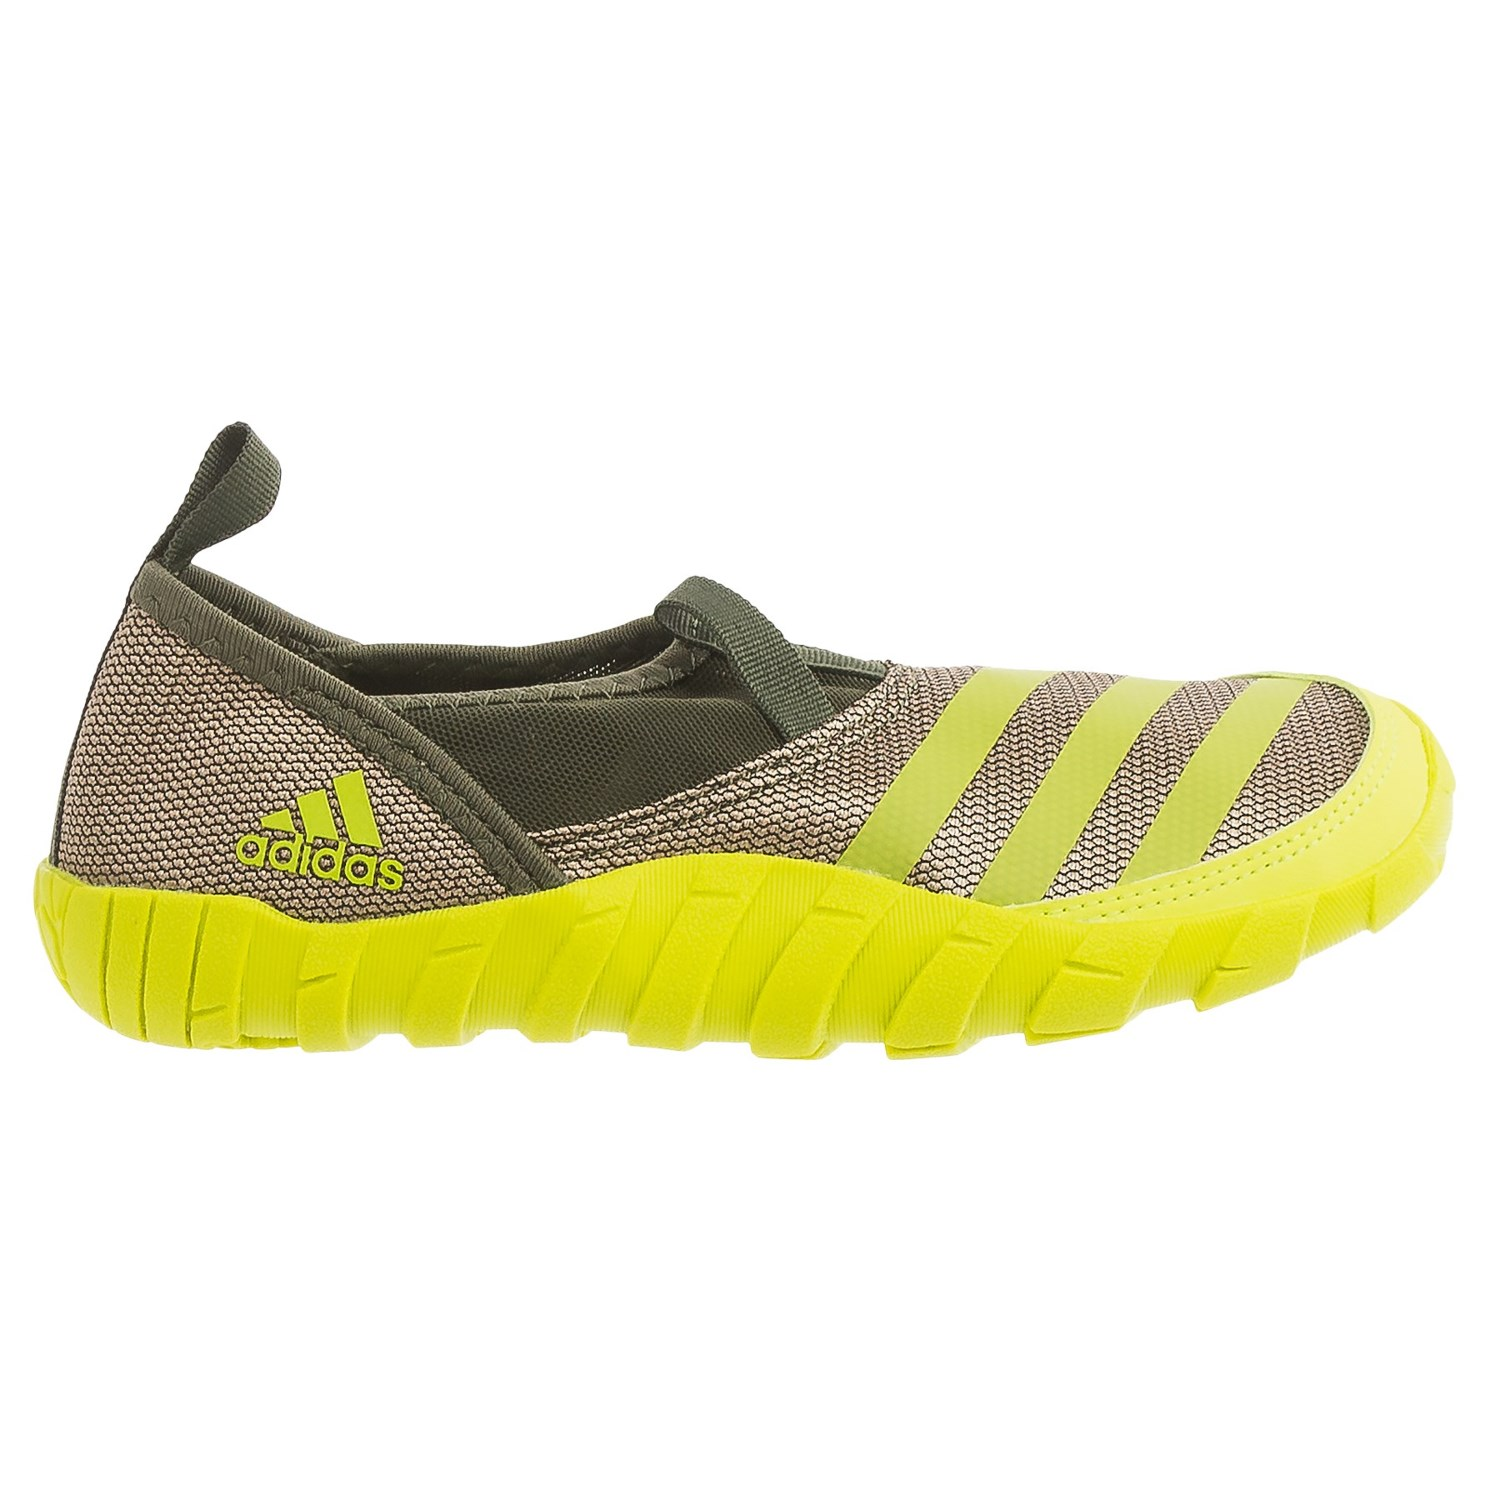 Adidas Water Shoes Australia